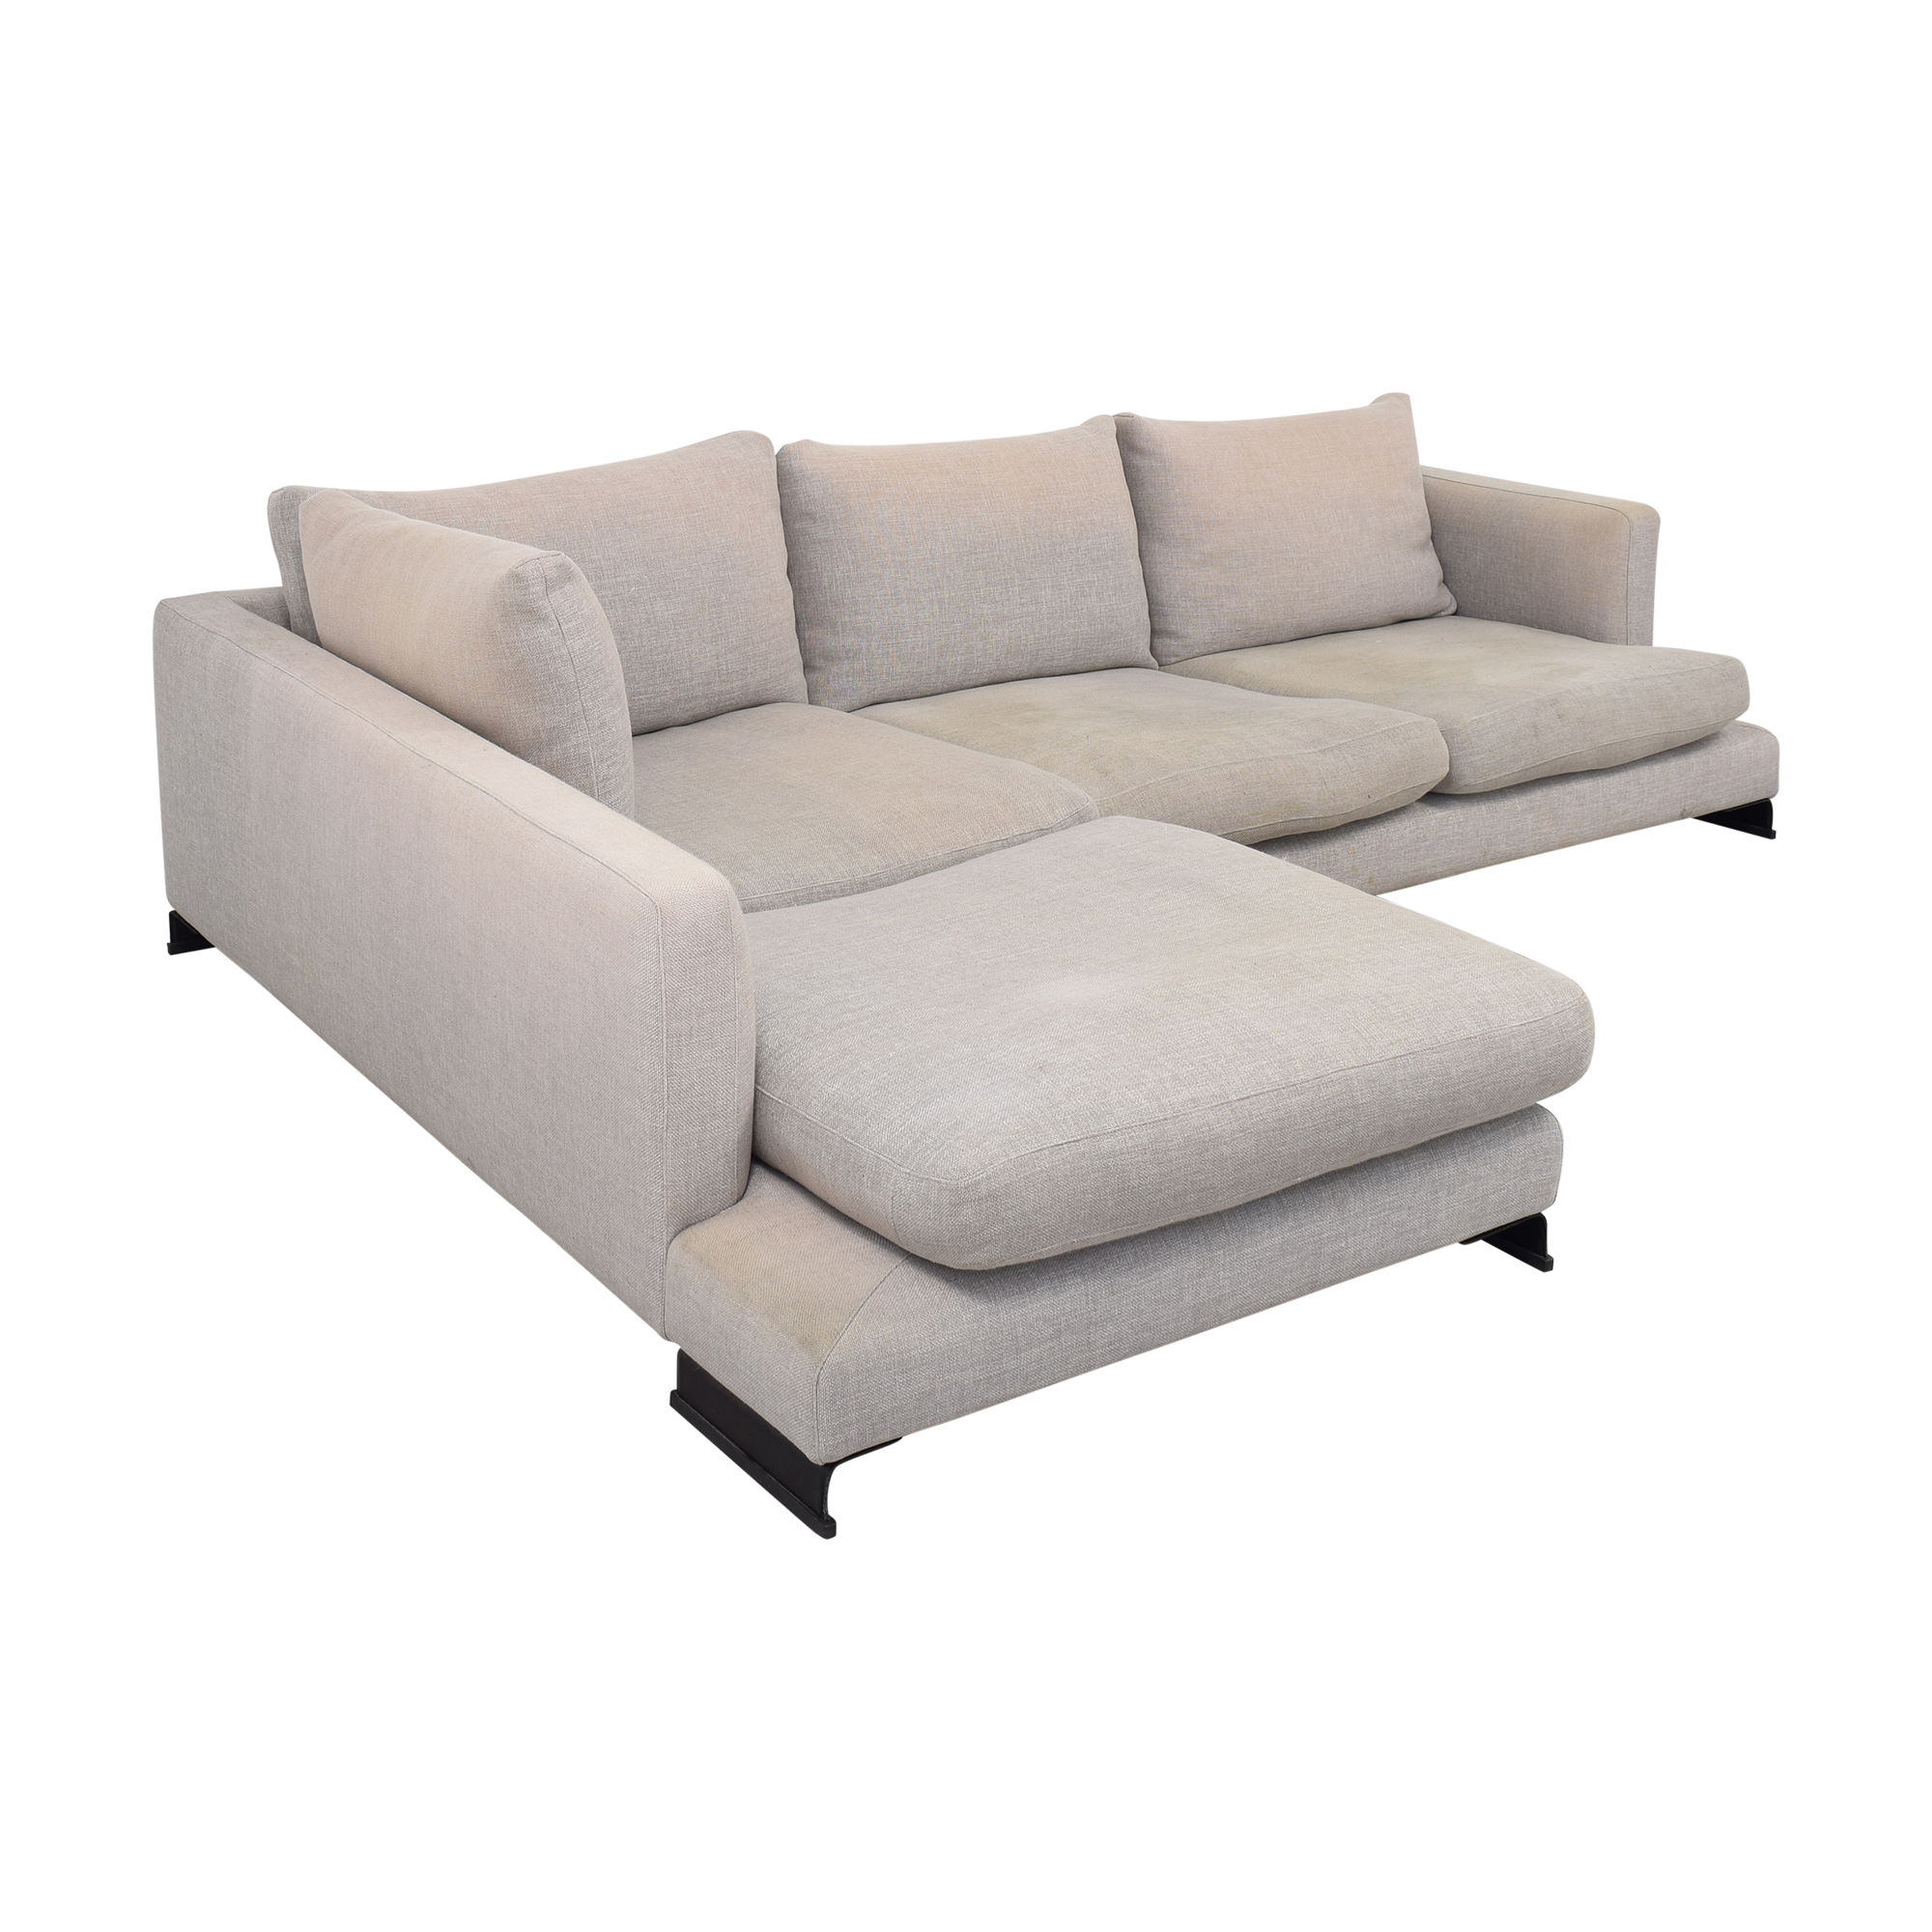 Camerich Camerich Lazy Time Sectional ma